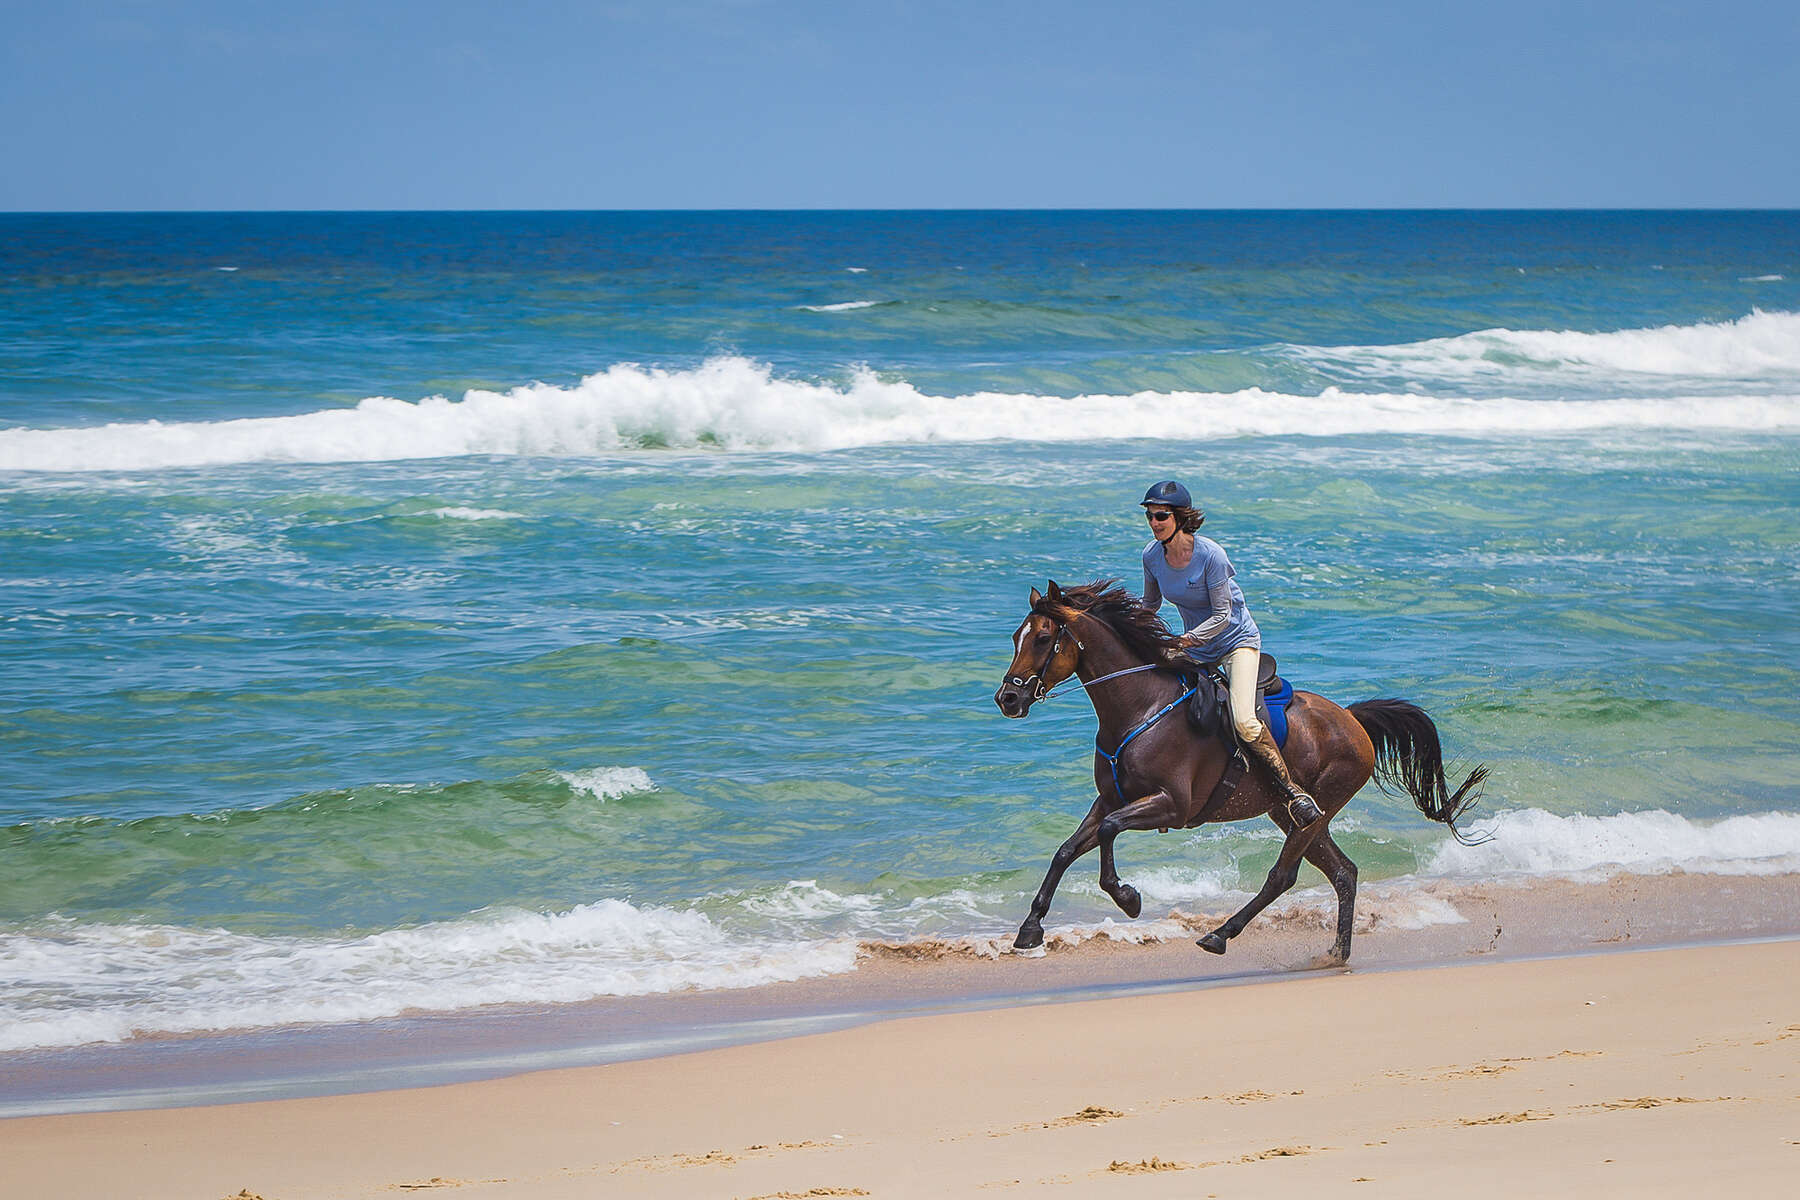 Rider cantering on an Australian beach on an Arabian horse